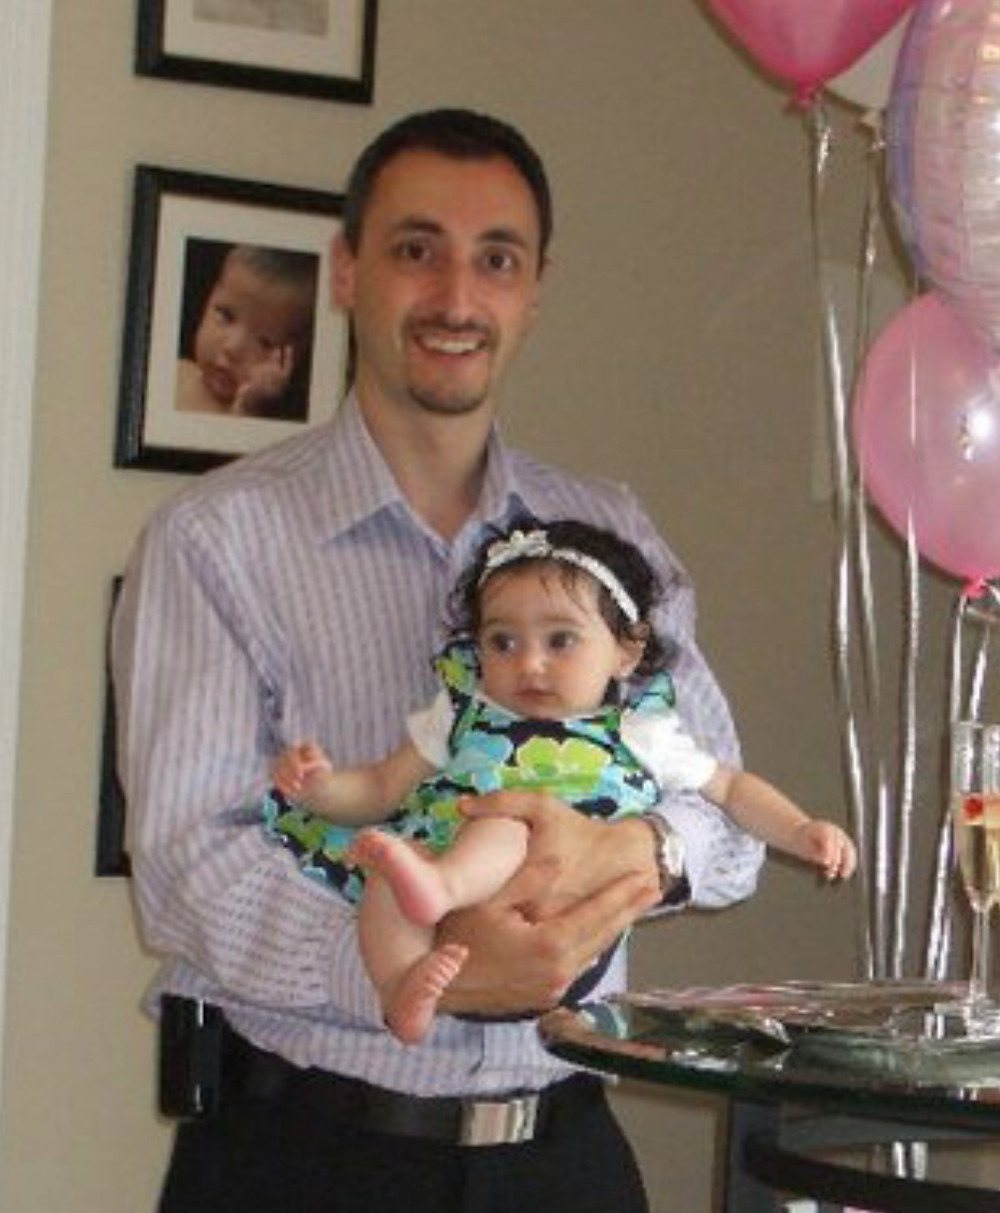 Mark and his young daughter Veronica